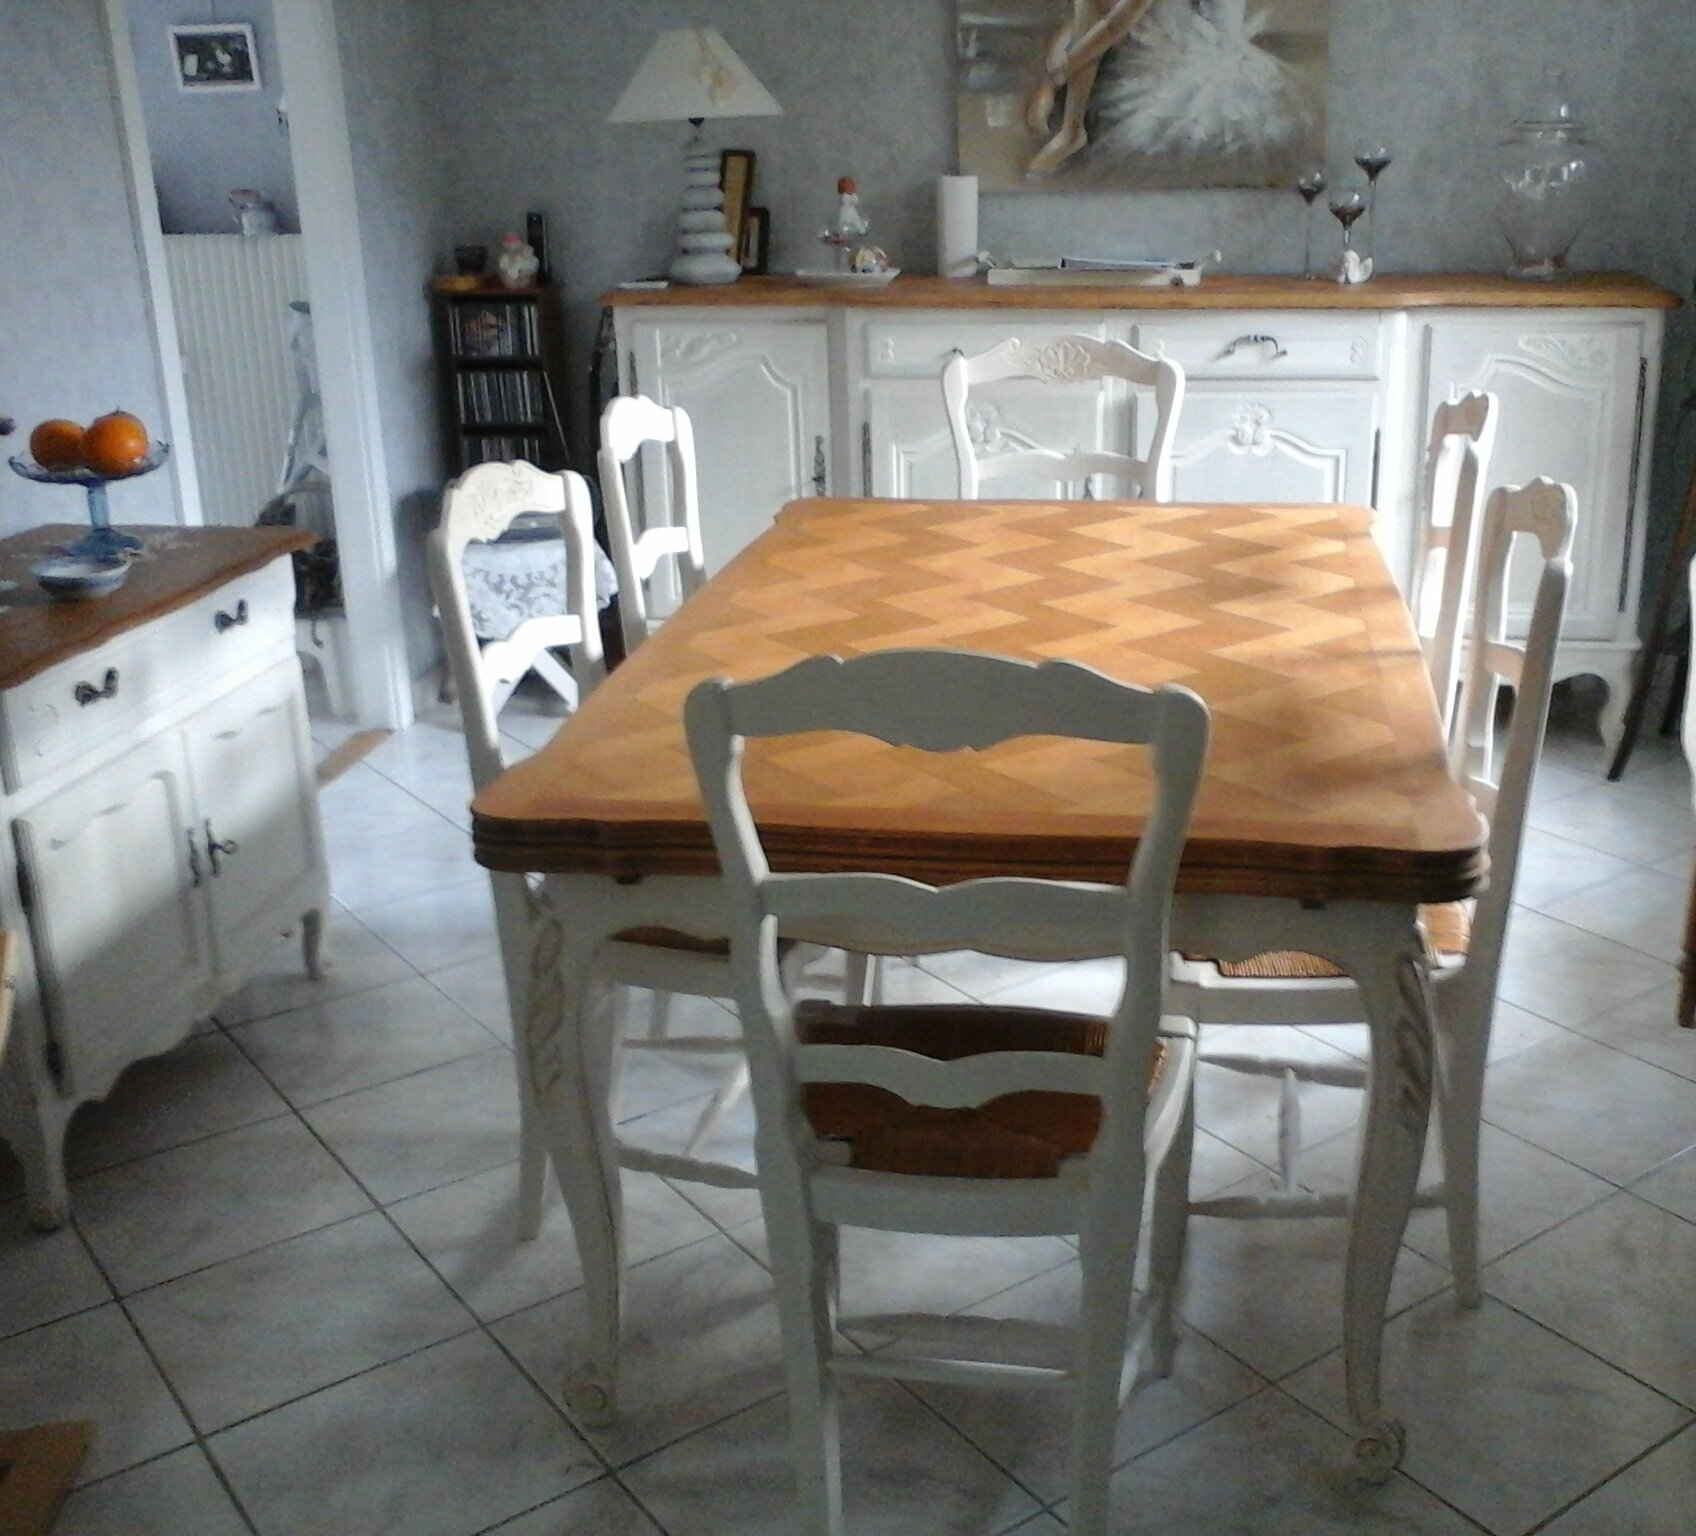 Relooker une table en ch ne ou merisier table monast re richelieu ou louis 15 pr s de nancy for Peindre meuble bois en blanc